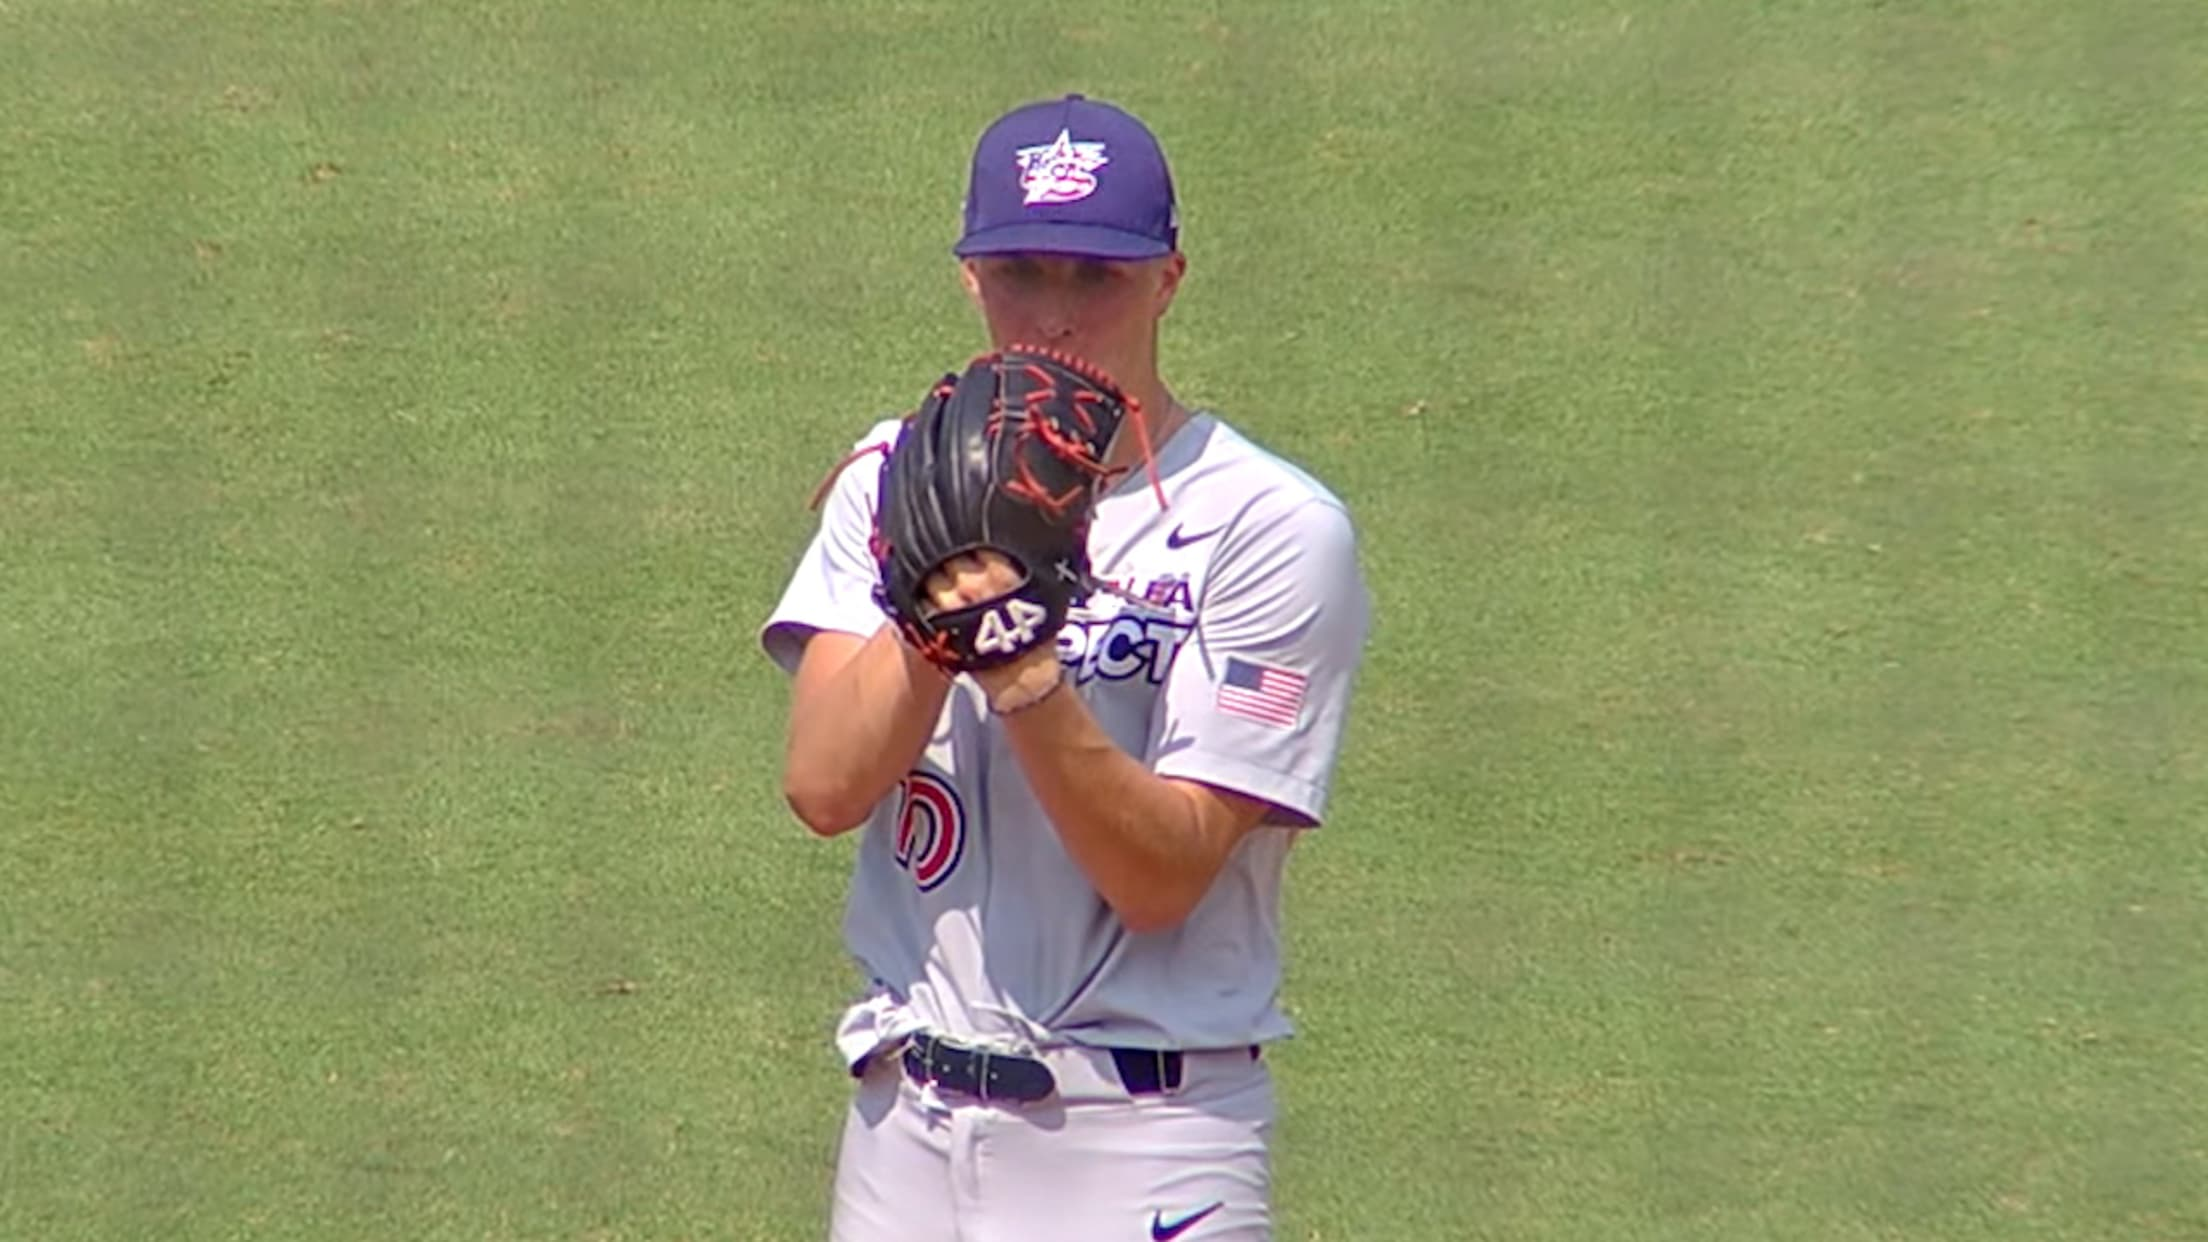 Brock Porter's two strikeouts